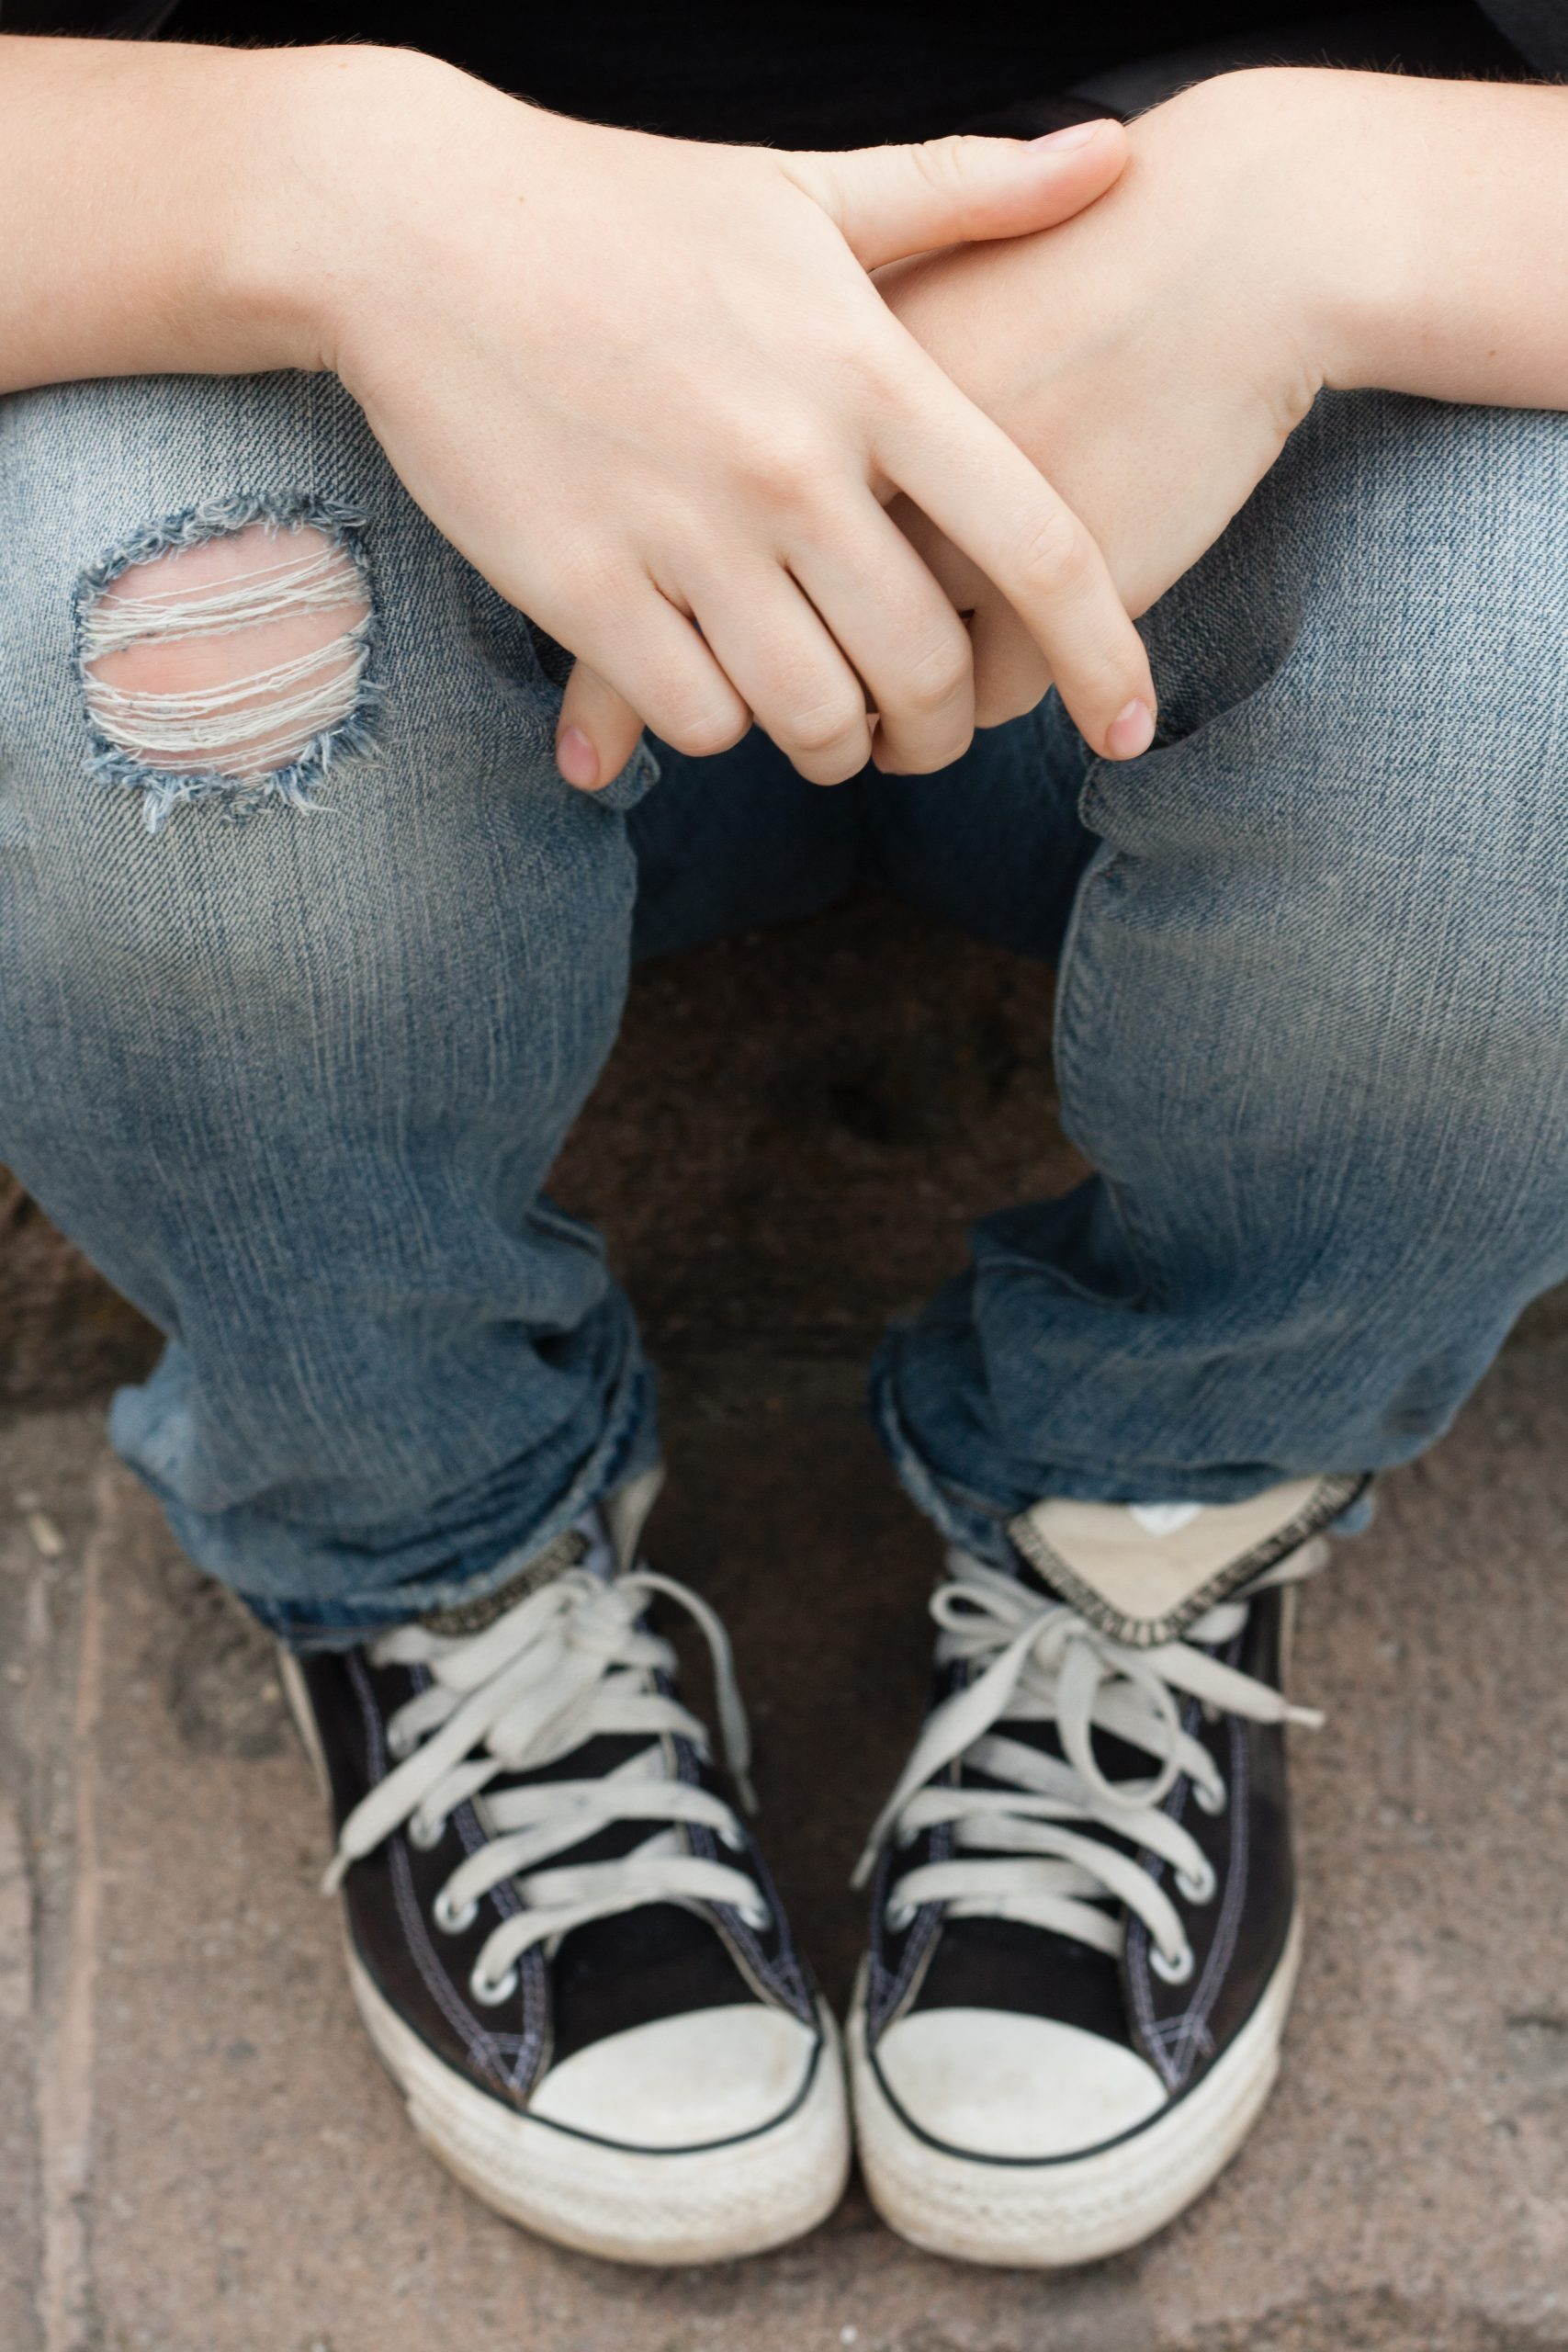 Teen with jeans and converse trainer in an article about teen happiness